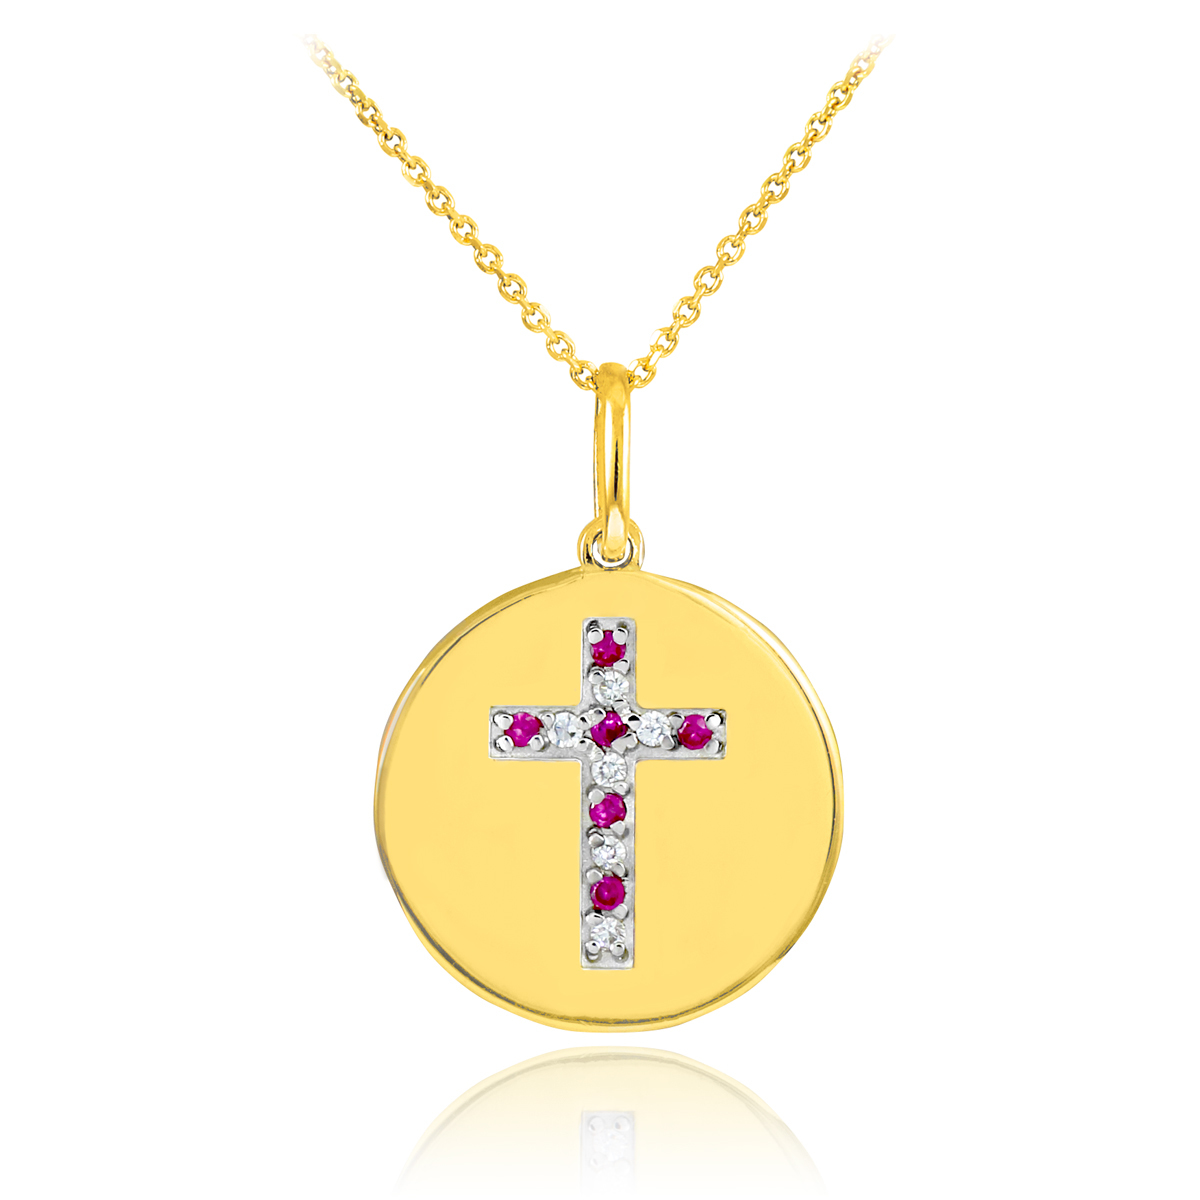 14K Gold Cross Diamond and Ruby Disc Pendant Necklace by